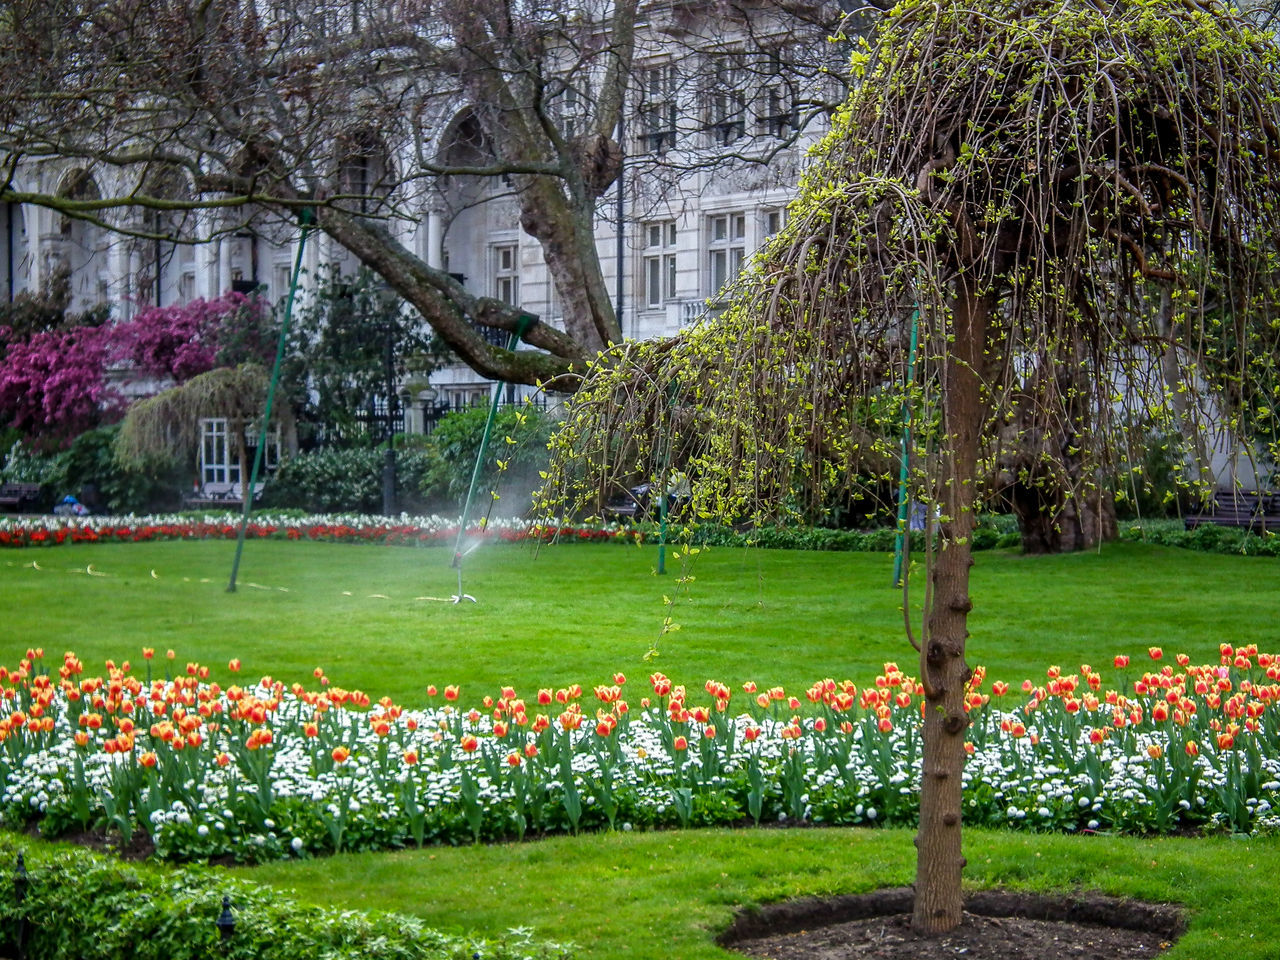 Architecture Beauty In Nature Day England Flower Gran Bretagna Grass Great Britain Green Color Growth Großbritannien Inghilterra Lawn London Londra Lush - Description Nature No People Ornamental Garden Outdoors Park - Man Made Space Plant Soccer Field Spraying Tree